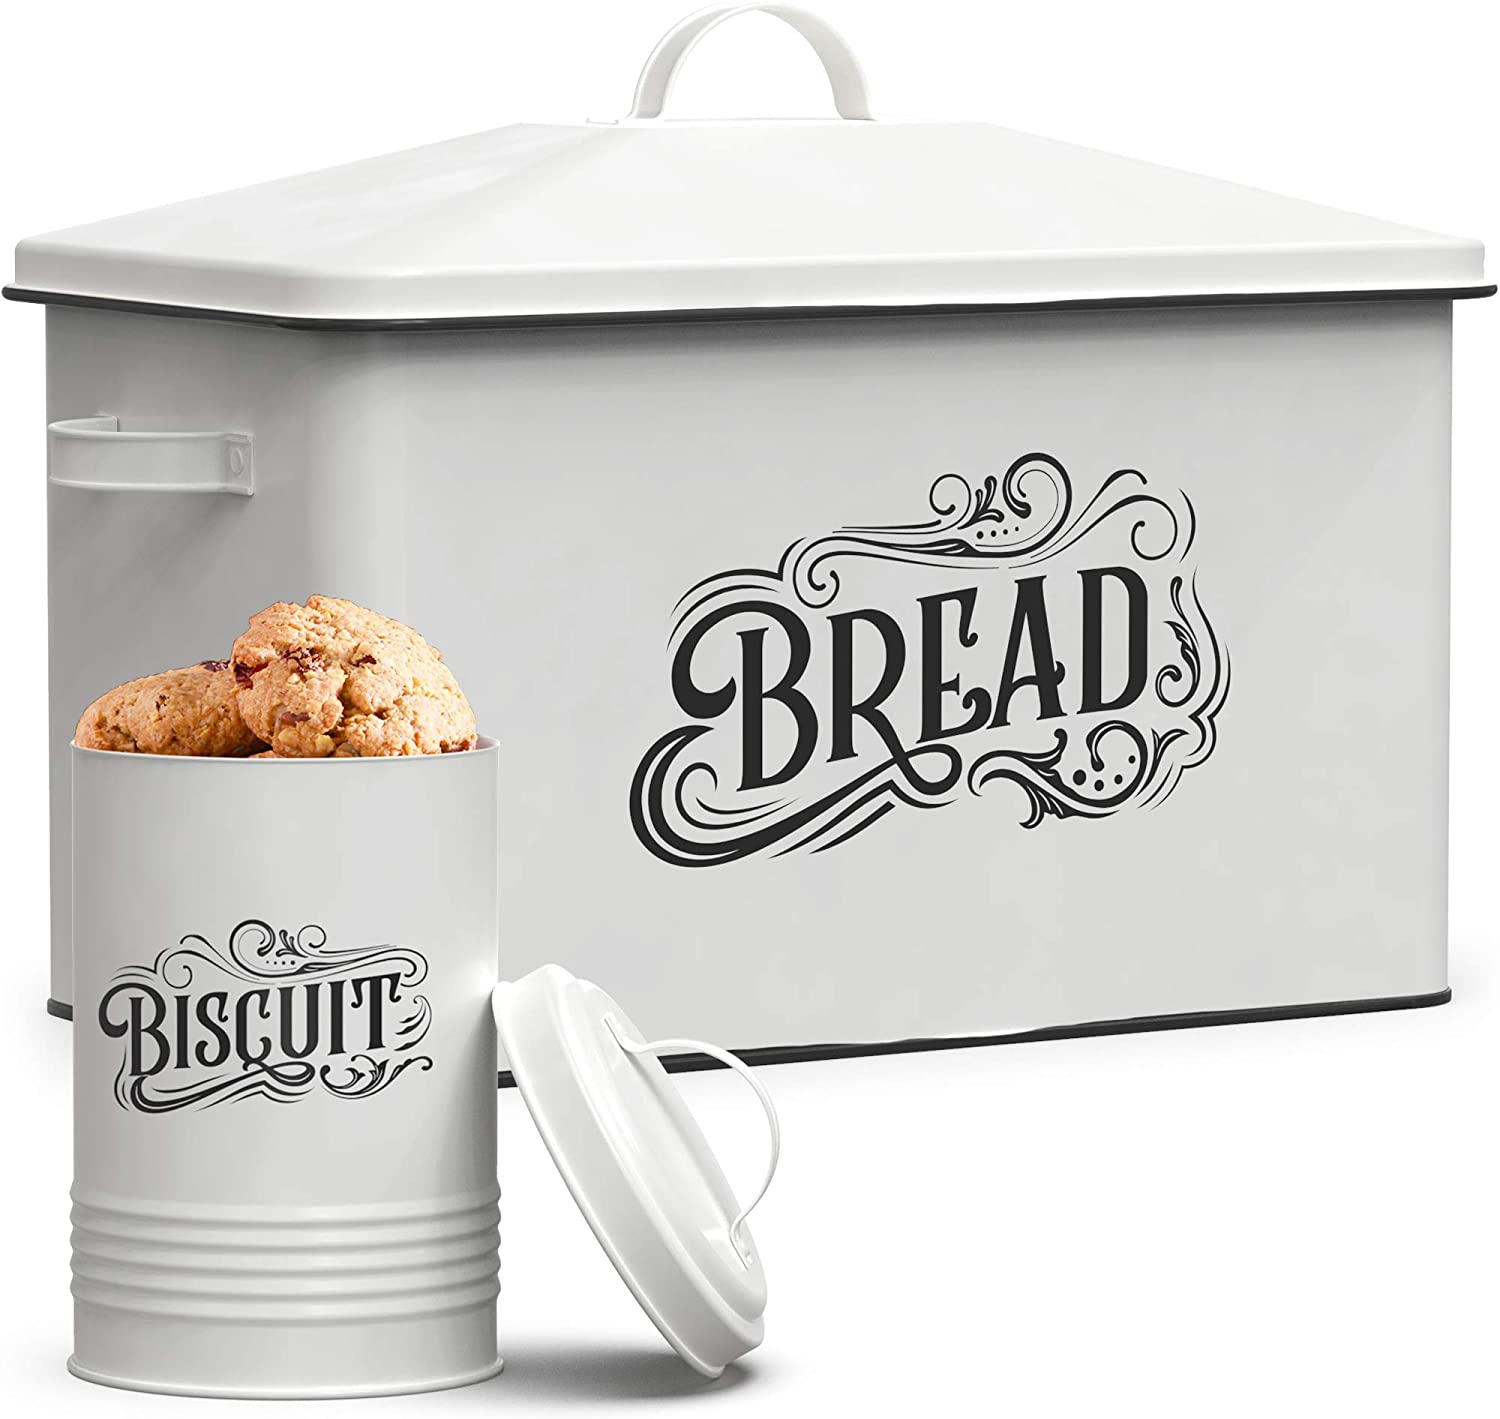 Amazon Com Farmhouse Bread Box Xl Size Bread Storage Container With Matching Biscuit Tin In White Metal Bread Boxes For Kitchen Counter Extra Large Retro Design Kitchen Dining